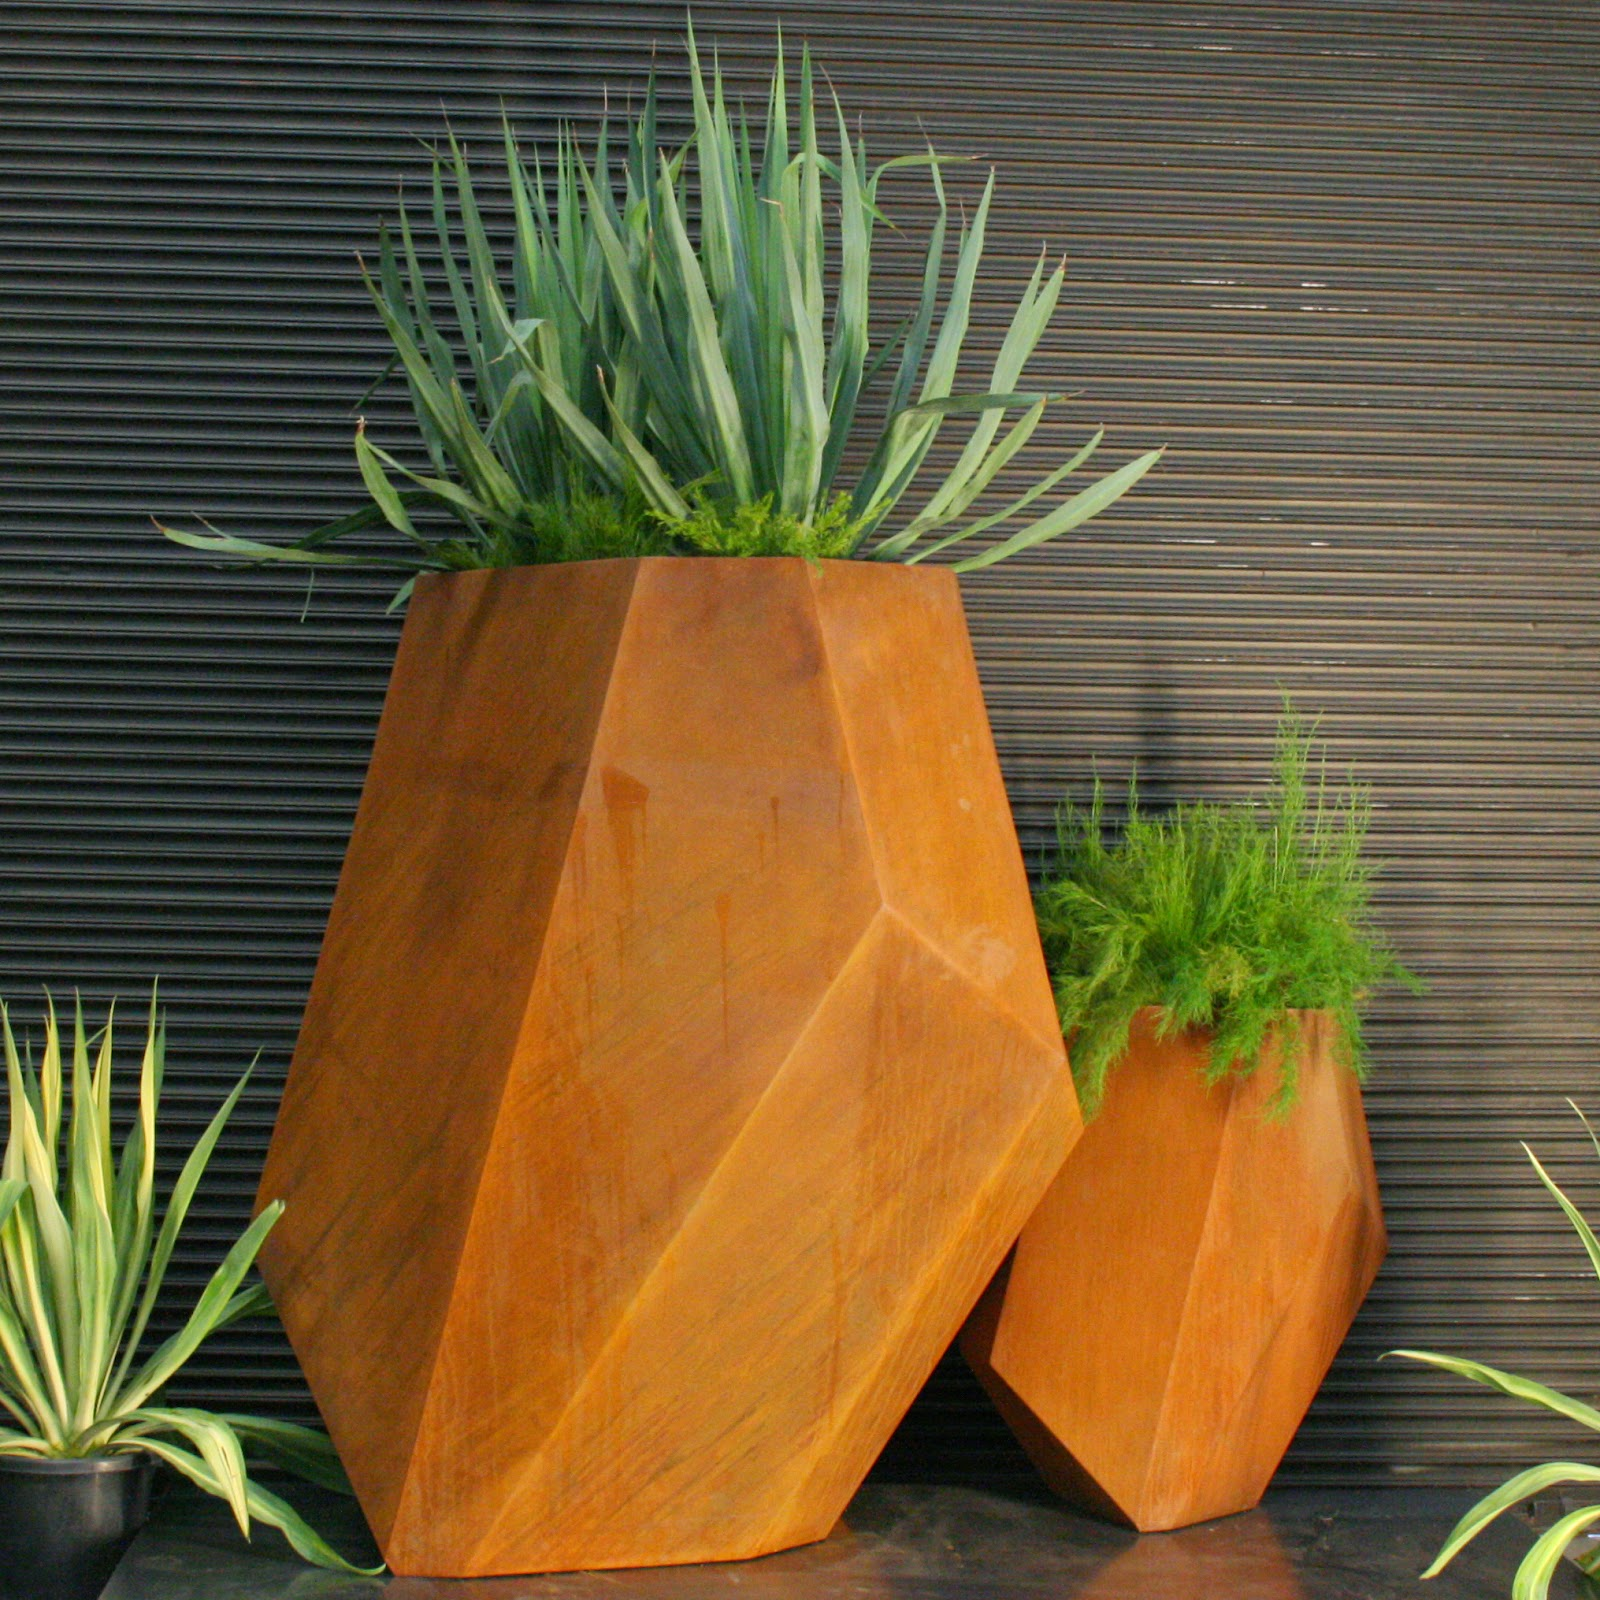 Awesome Corten Steel Planters Homesfeed Corten Steel Planters Los Angeles Corten Steel Planters Australia Different Sizes Shaped Steel Planter houzz 01 Corten Steel Planters